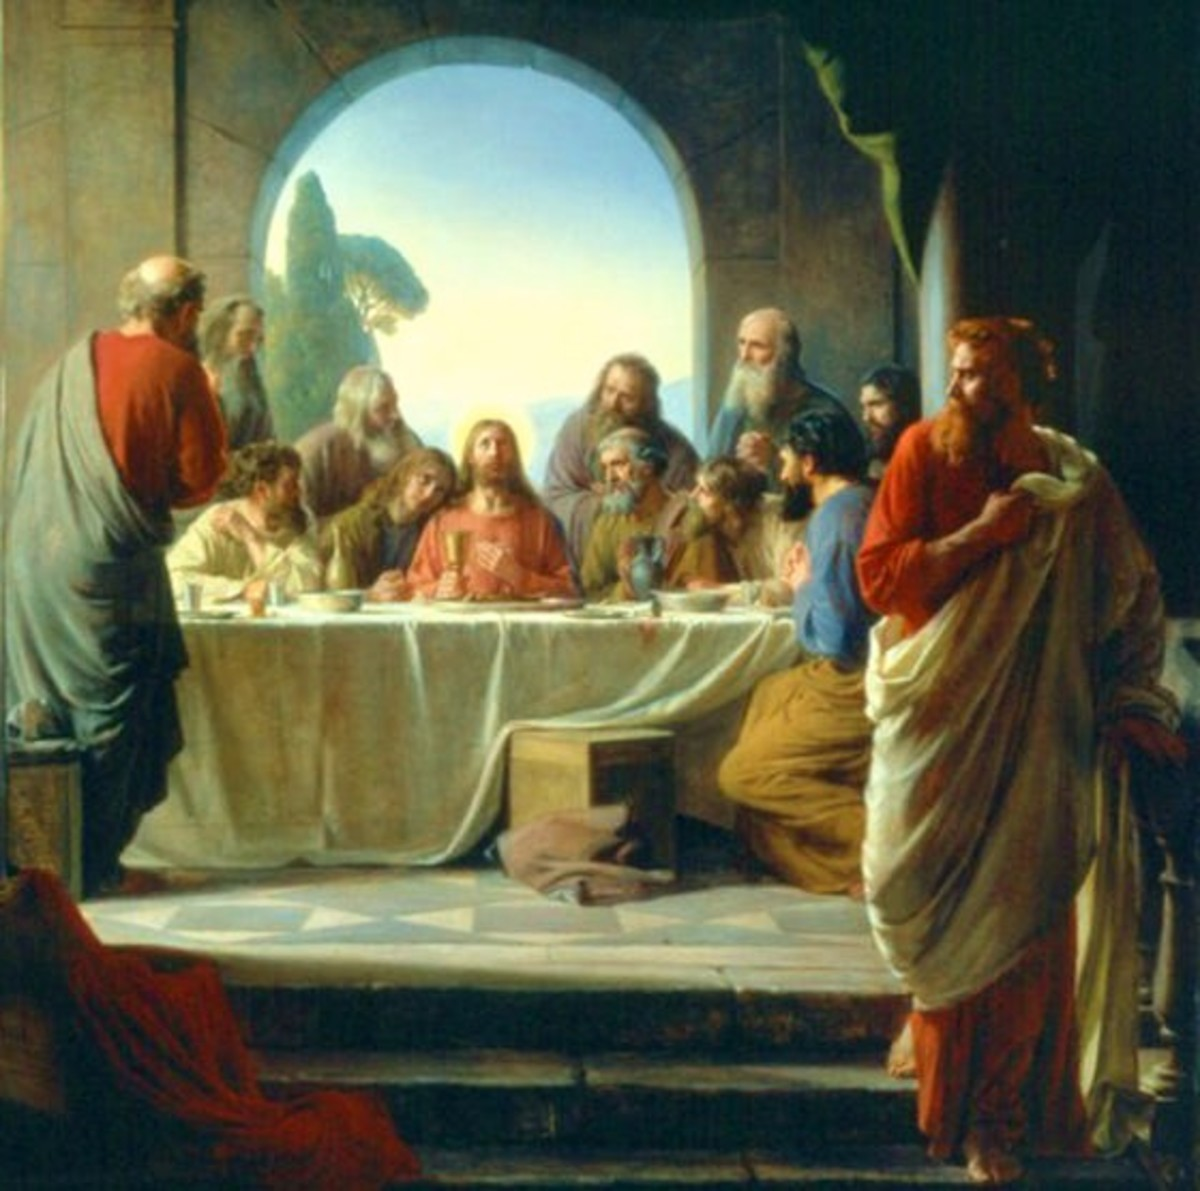 """Judas Iscariot retiring from The Last Supper"" by Carl Bloch (late 19th century)"